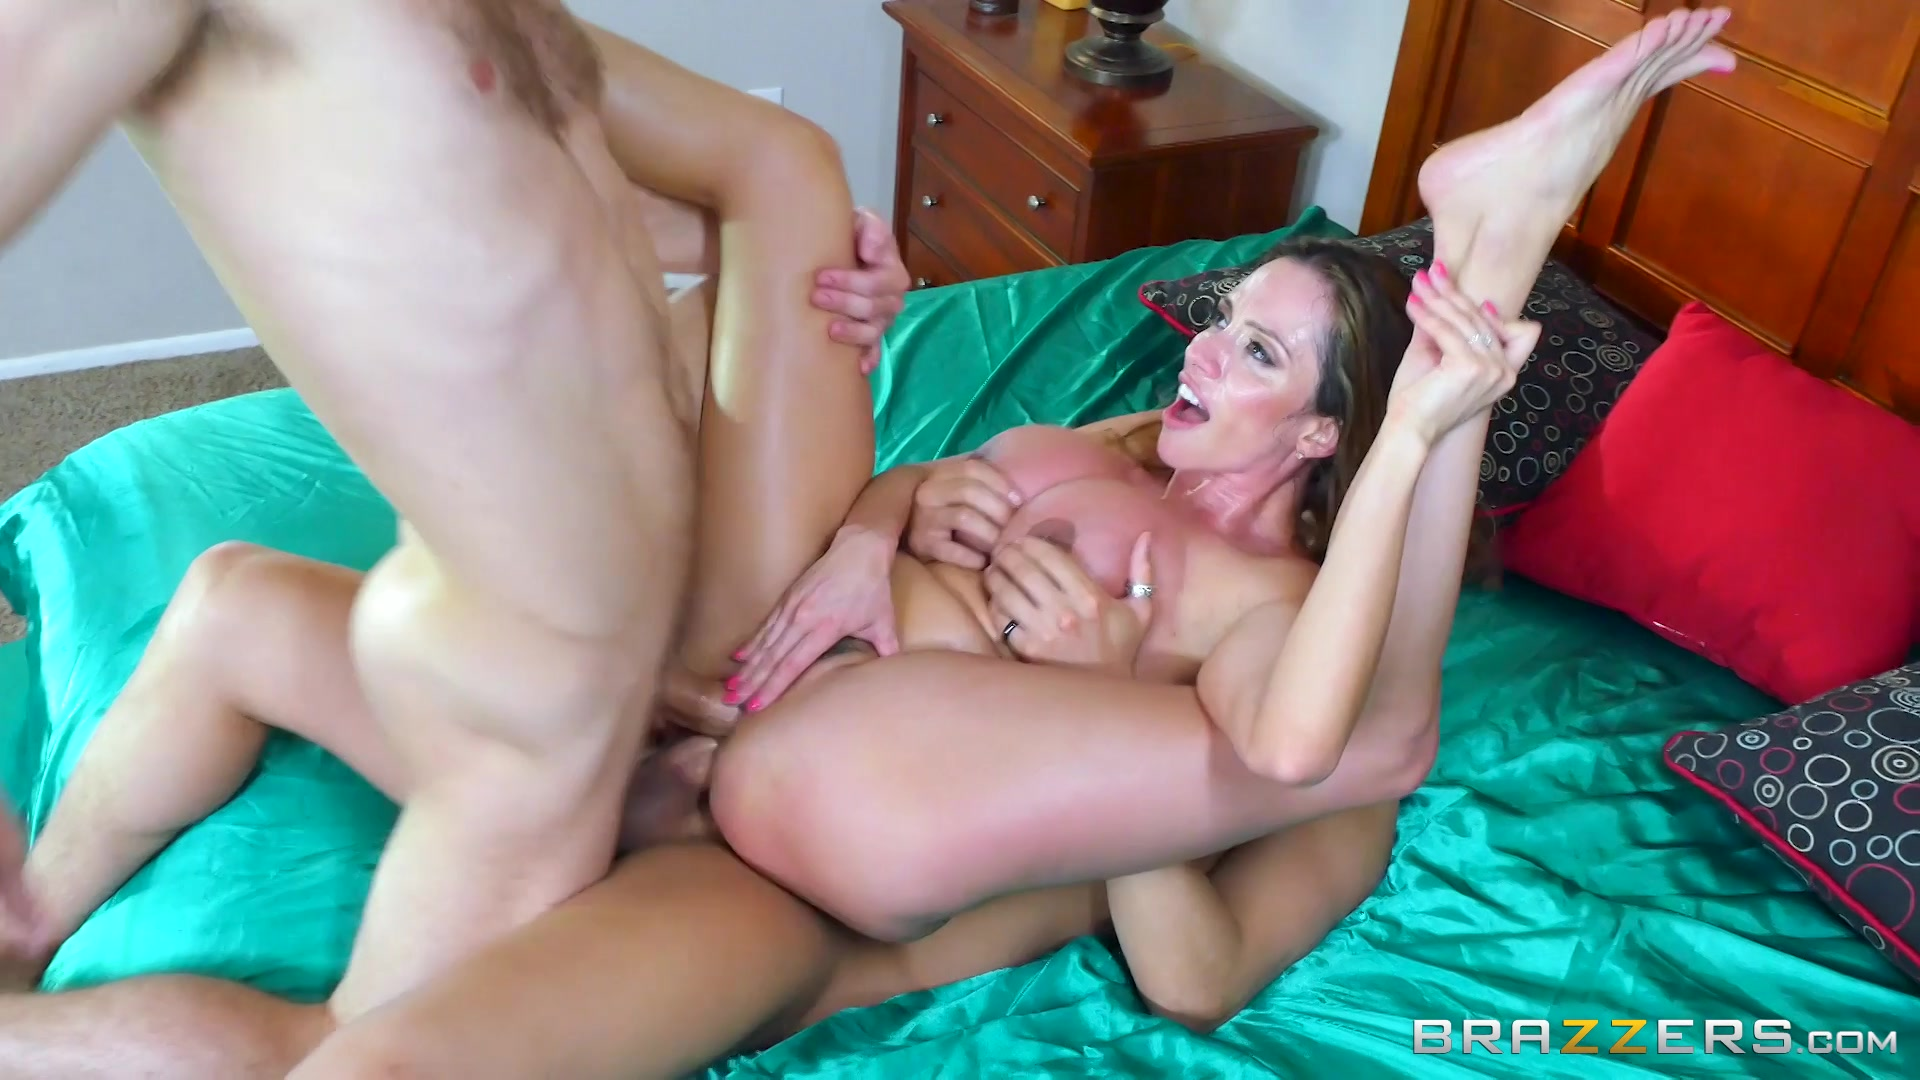 Filthy latina mom with big tits analyssa had nice side to side fuck with her white buddy